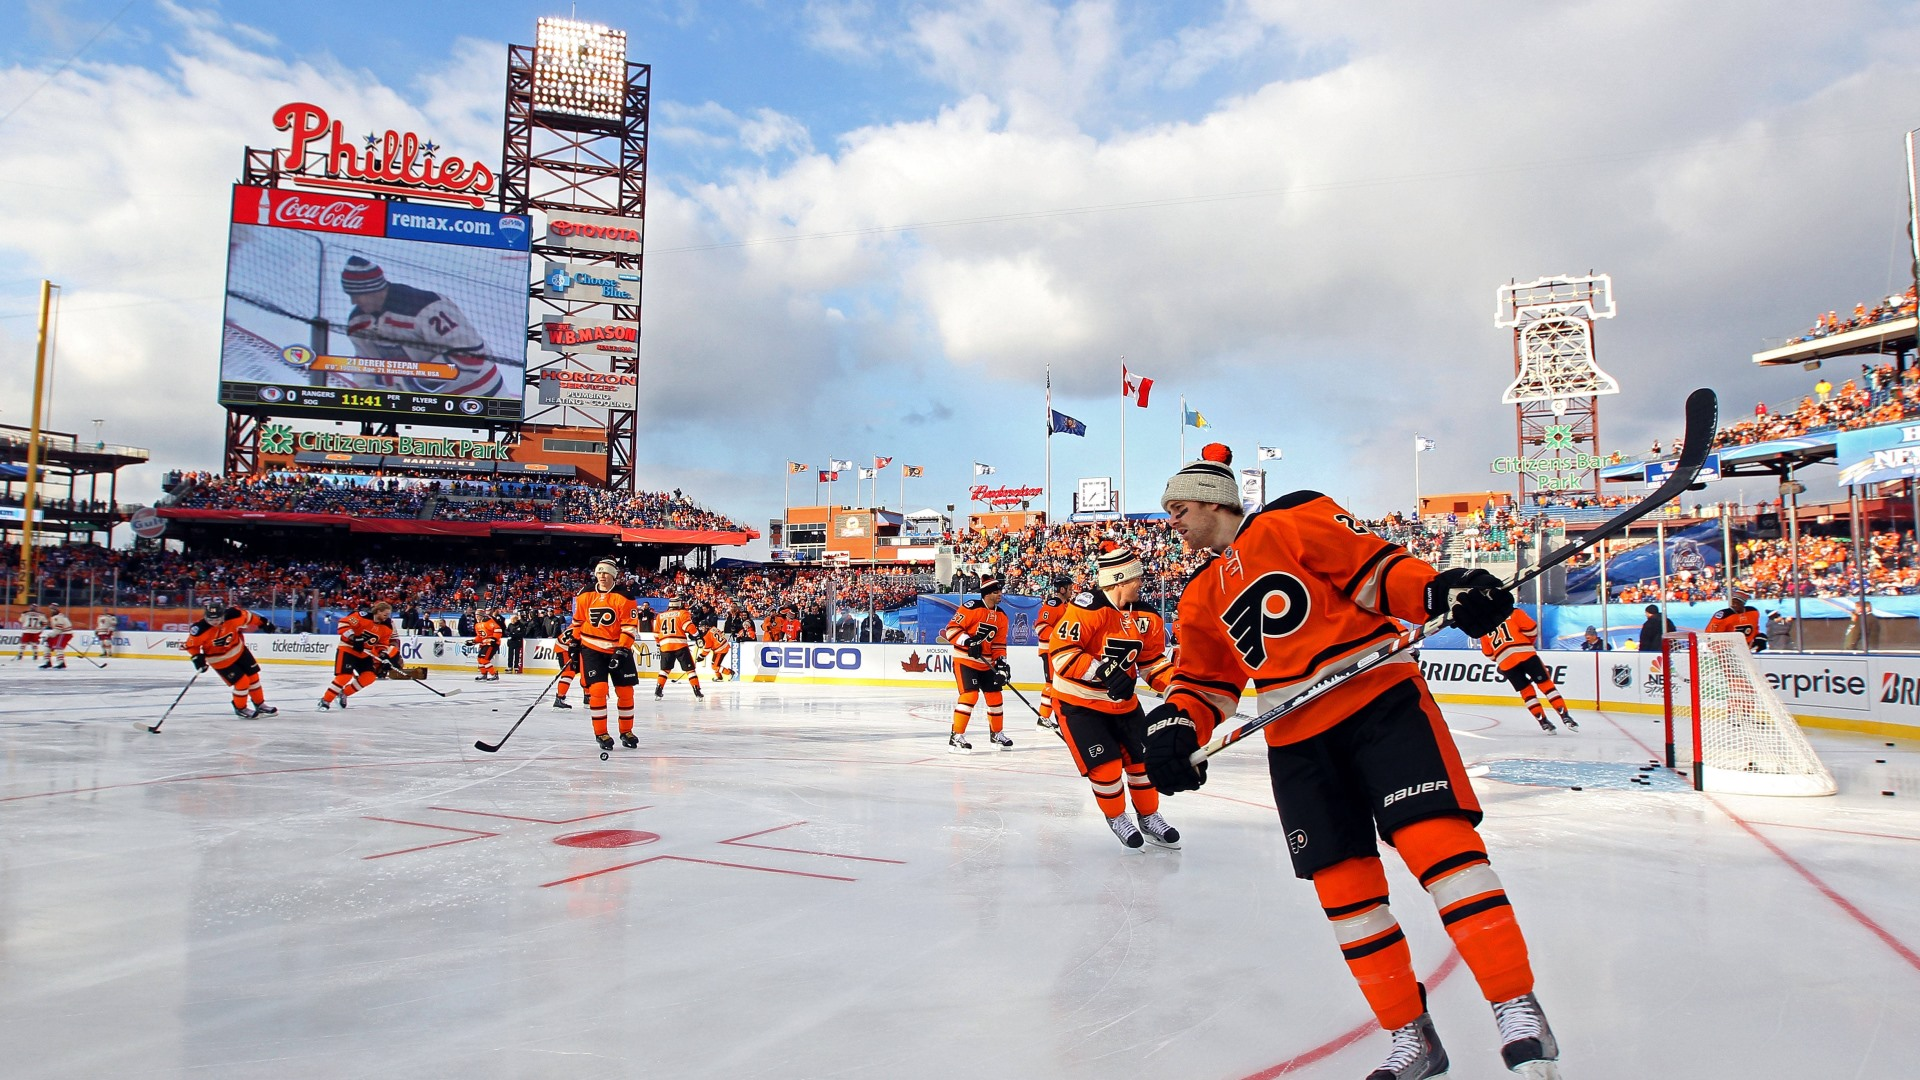 2014 NHL Winter Classic  Wikipedia